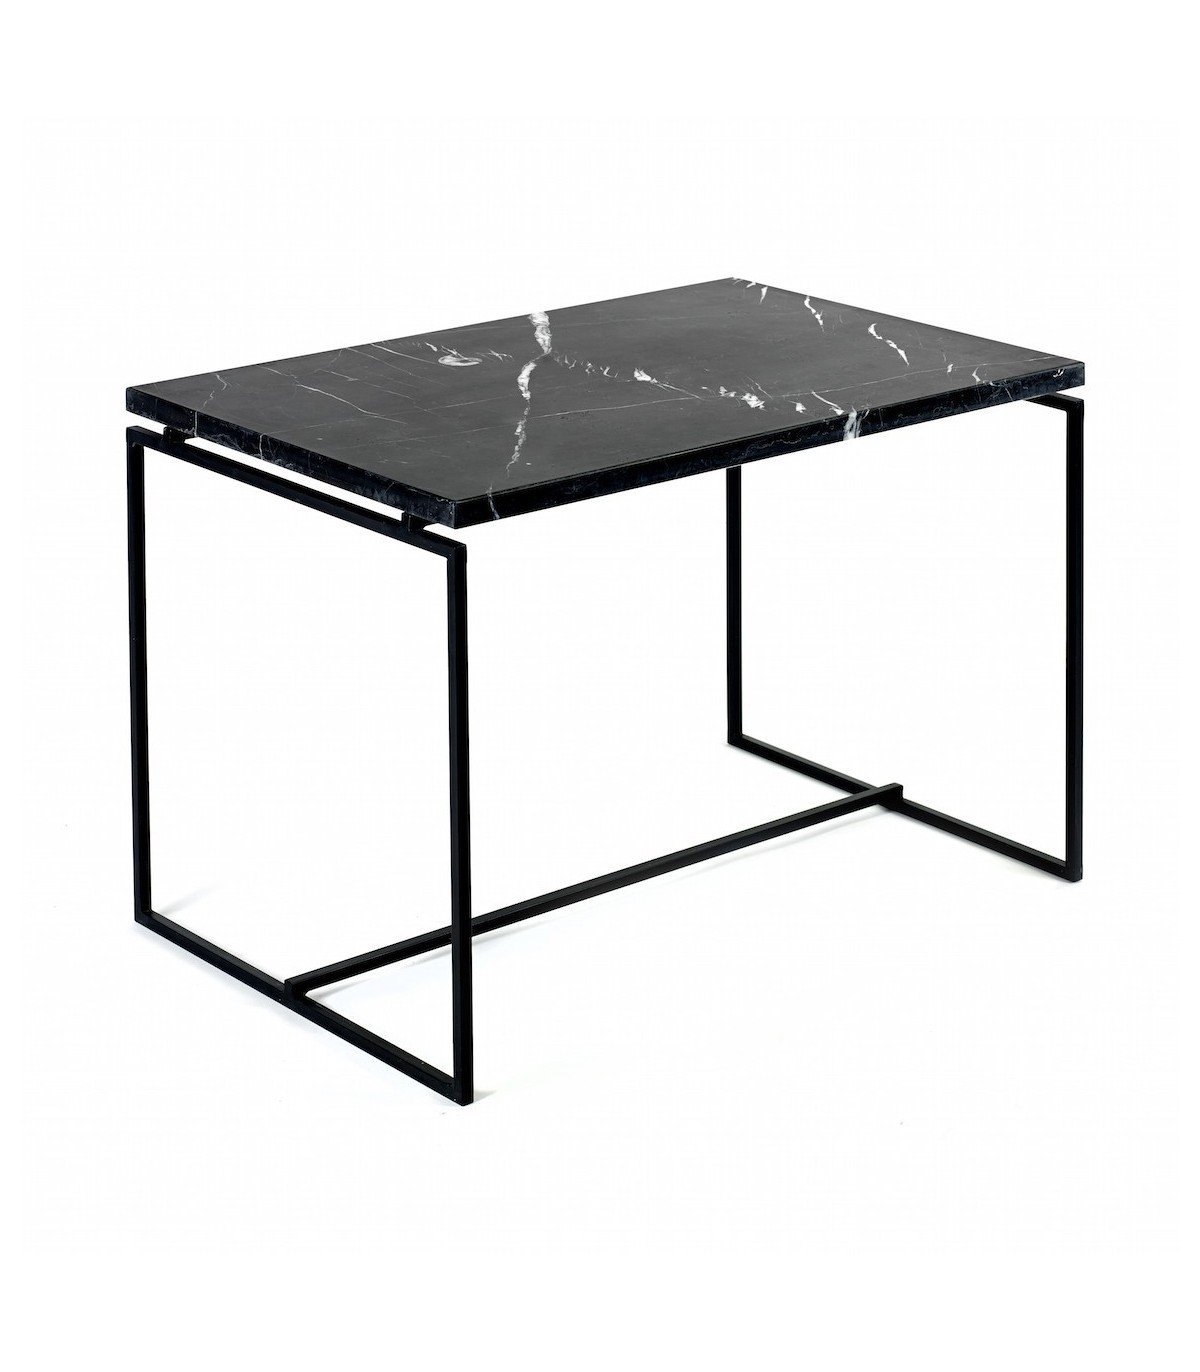 Klein Marble Coffee Table: Nero Black Marble Table Serax